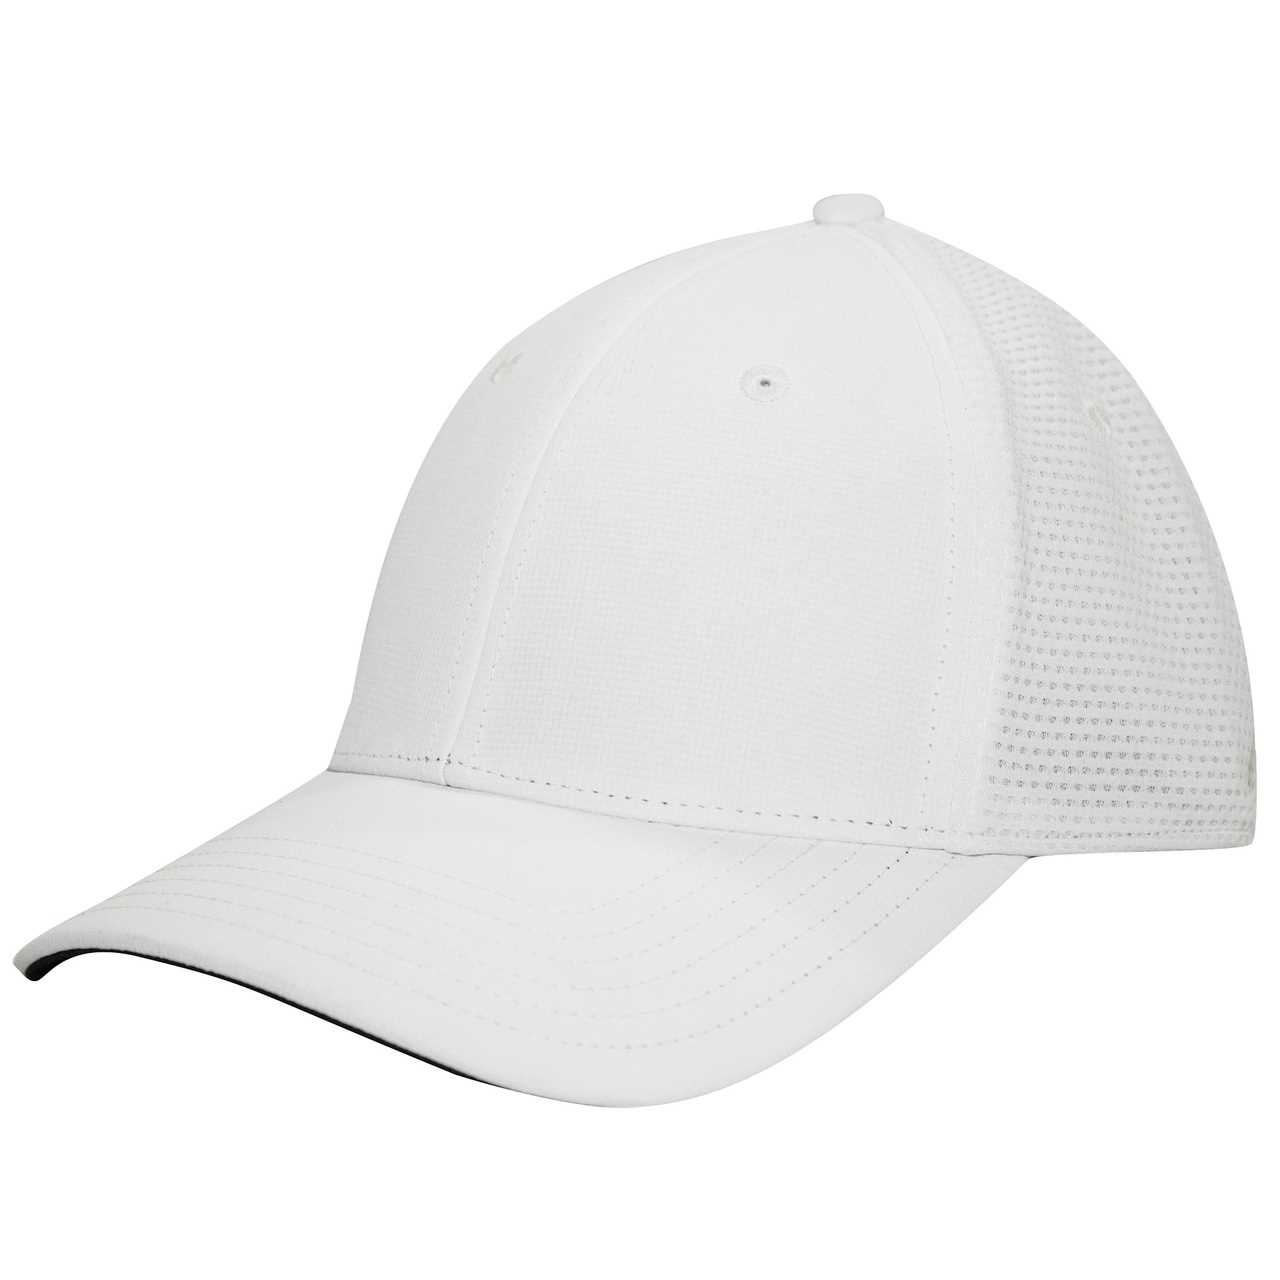 0f3a617939a TaylorMade Golf Custom Blank Tour Cage Hat - White